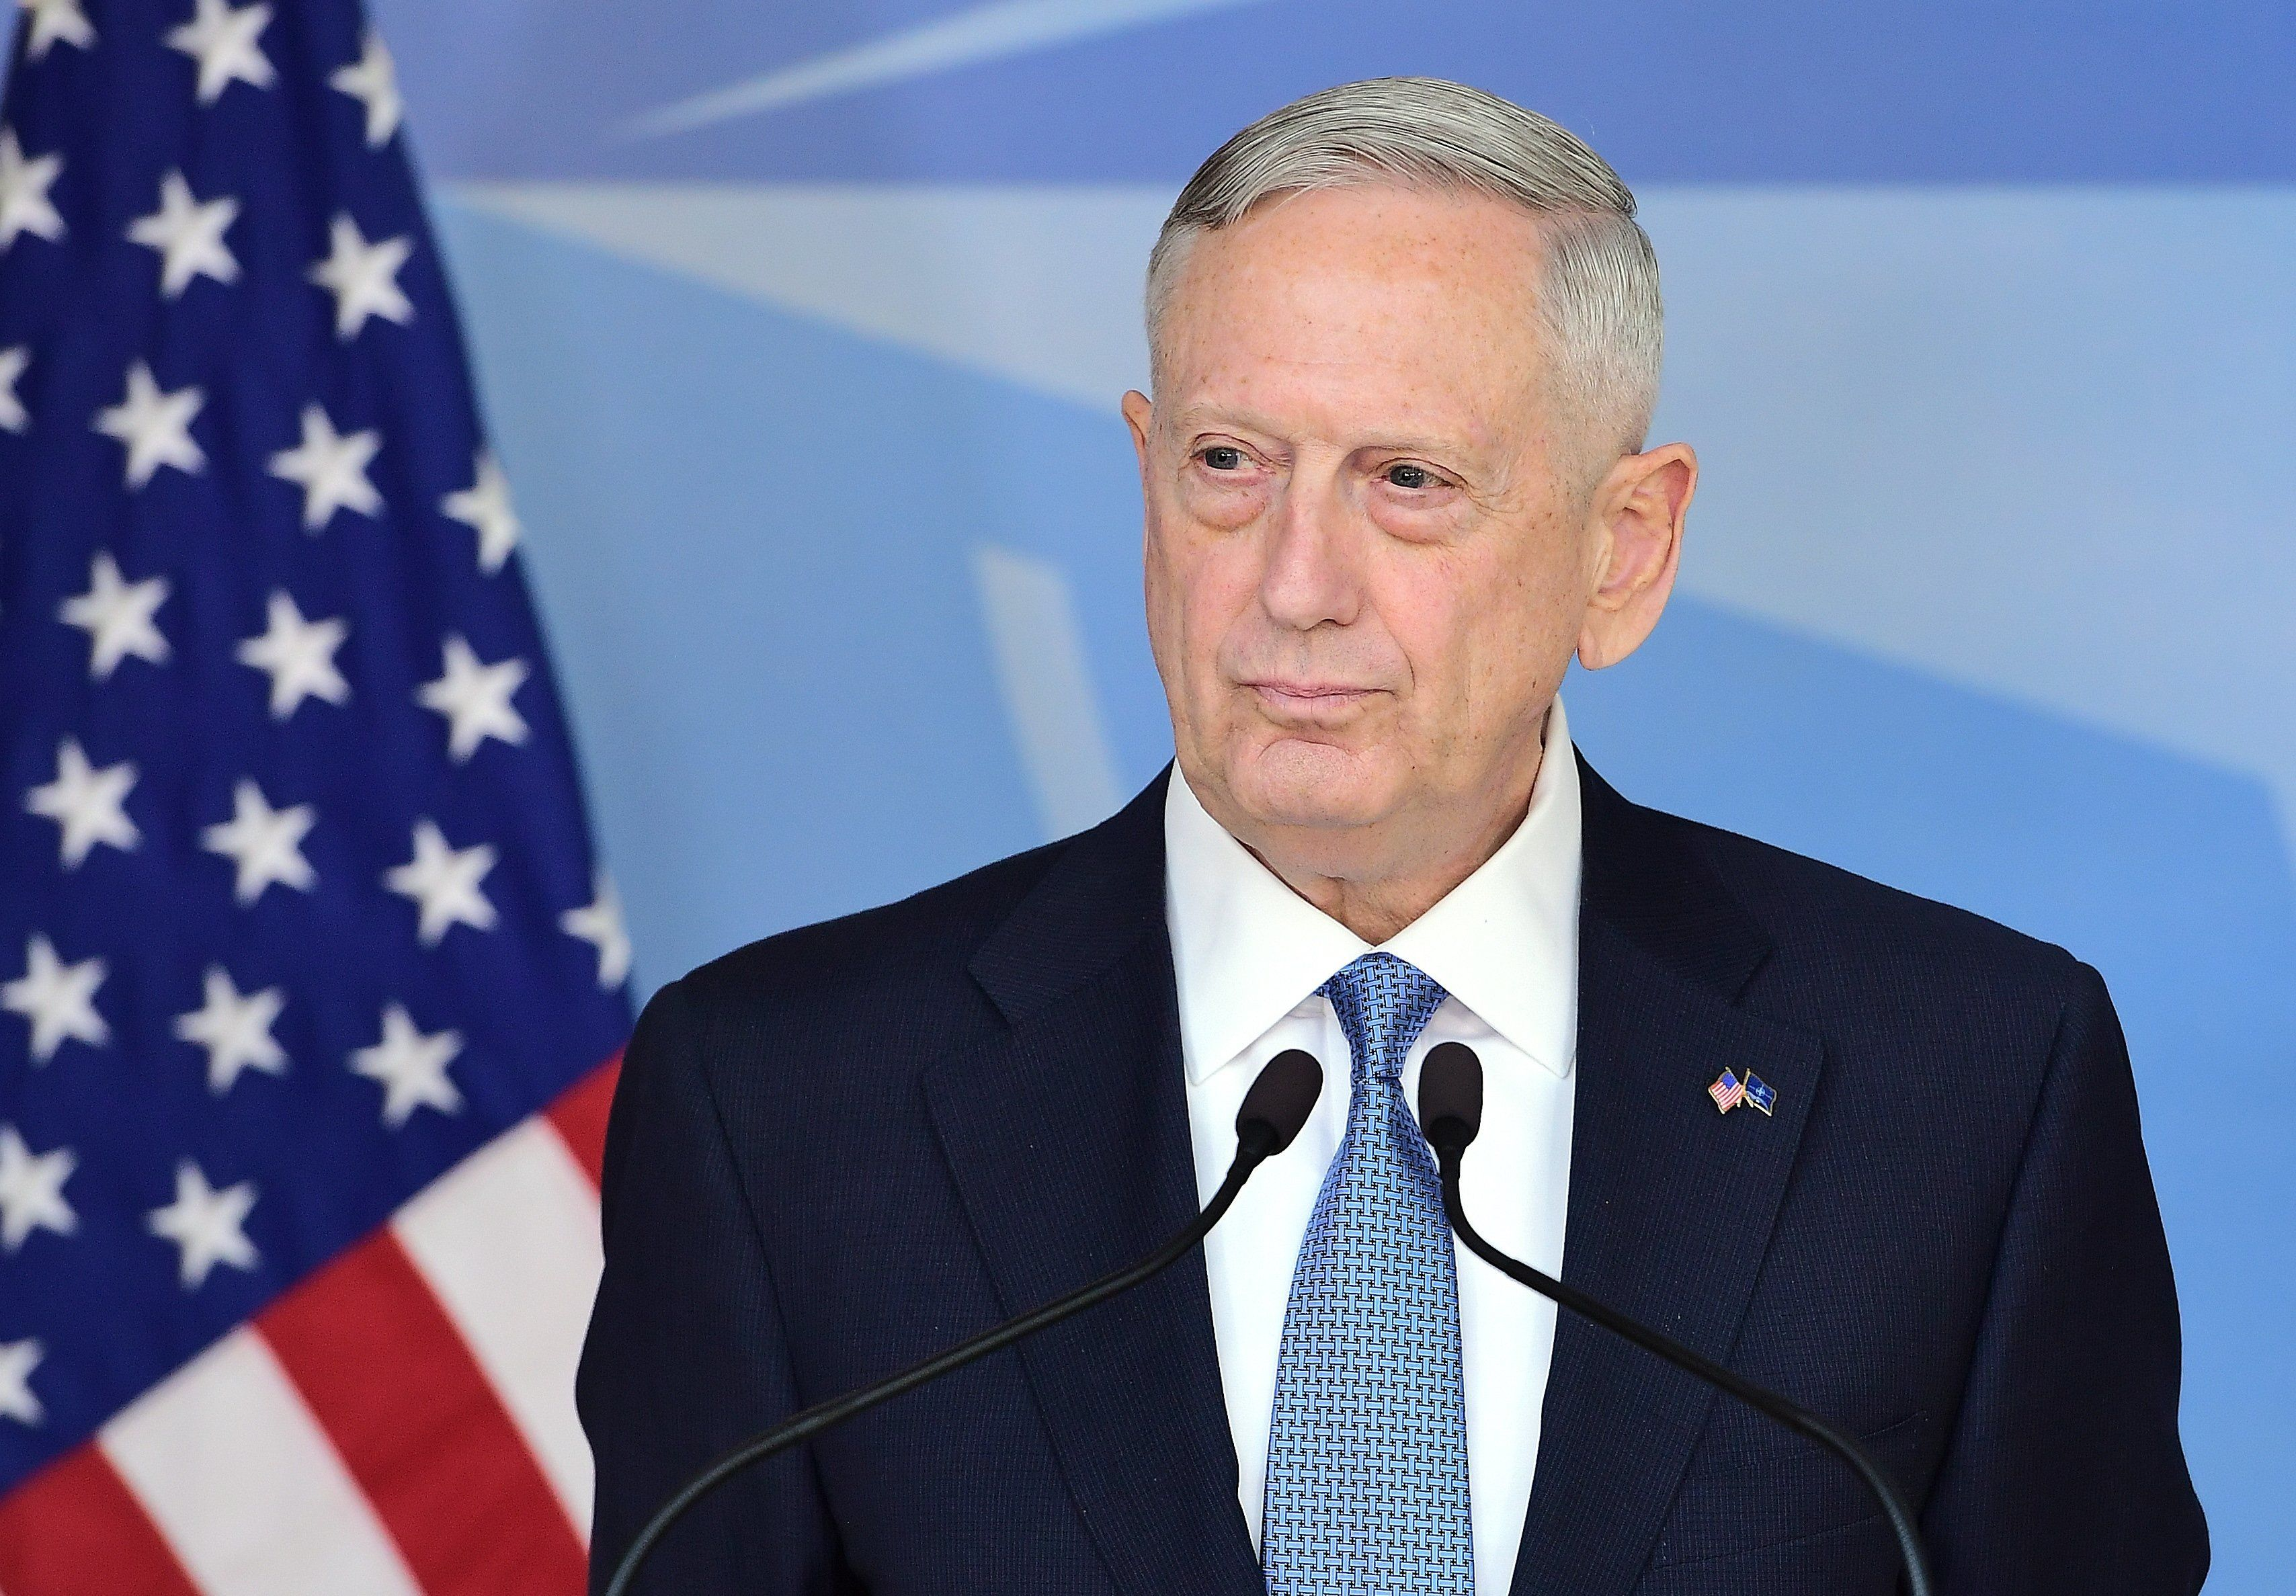 US Defence Minister James Mattis addresses the press during a NATO defence ministers' meetings at the NATO headquarters in Brussels on February 15, 2017. / AFP / EMMANUEL DUNAND        (Photo credit should read EMMANUEL DUNAND/AFP/Getty Images)